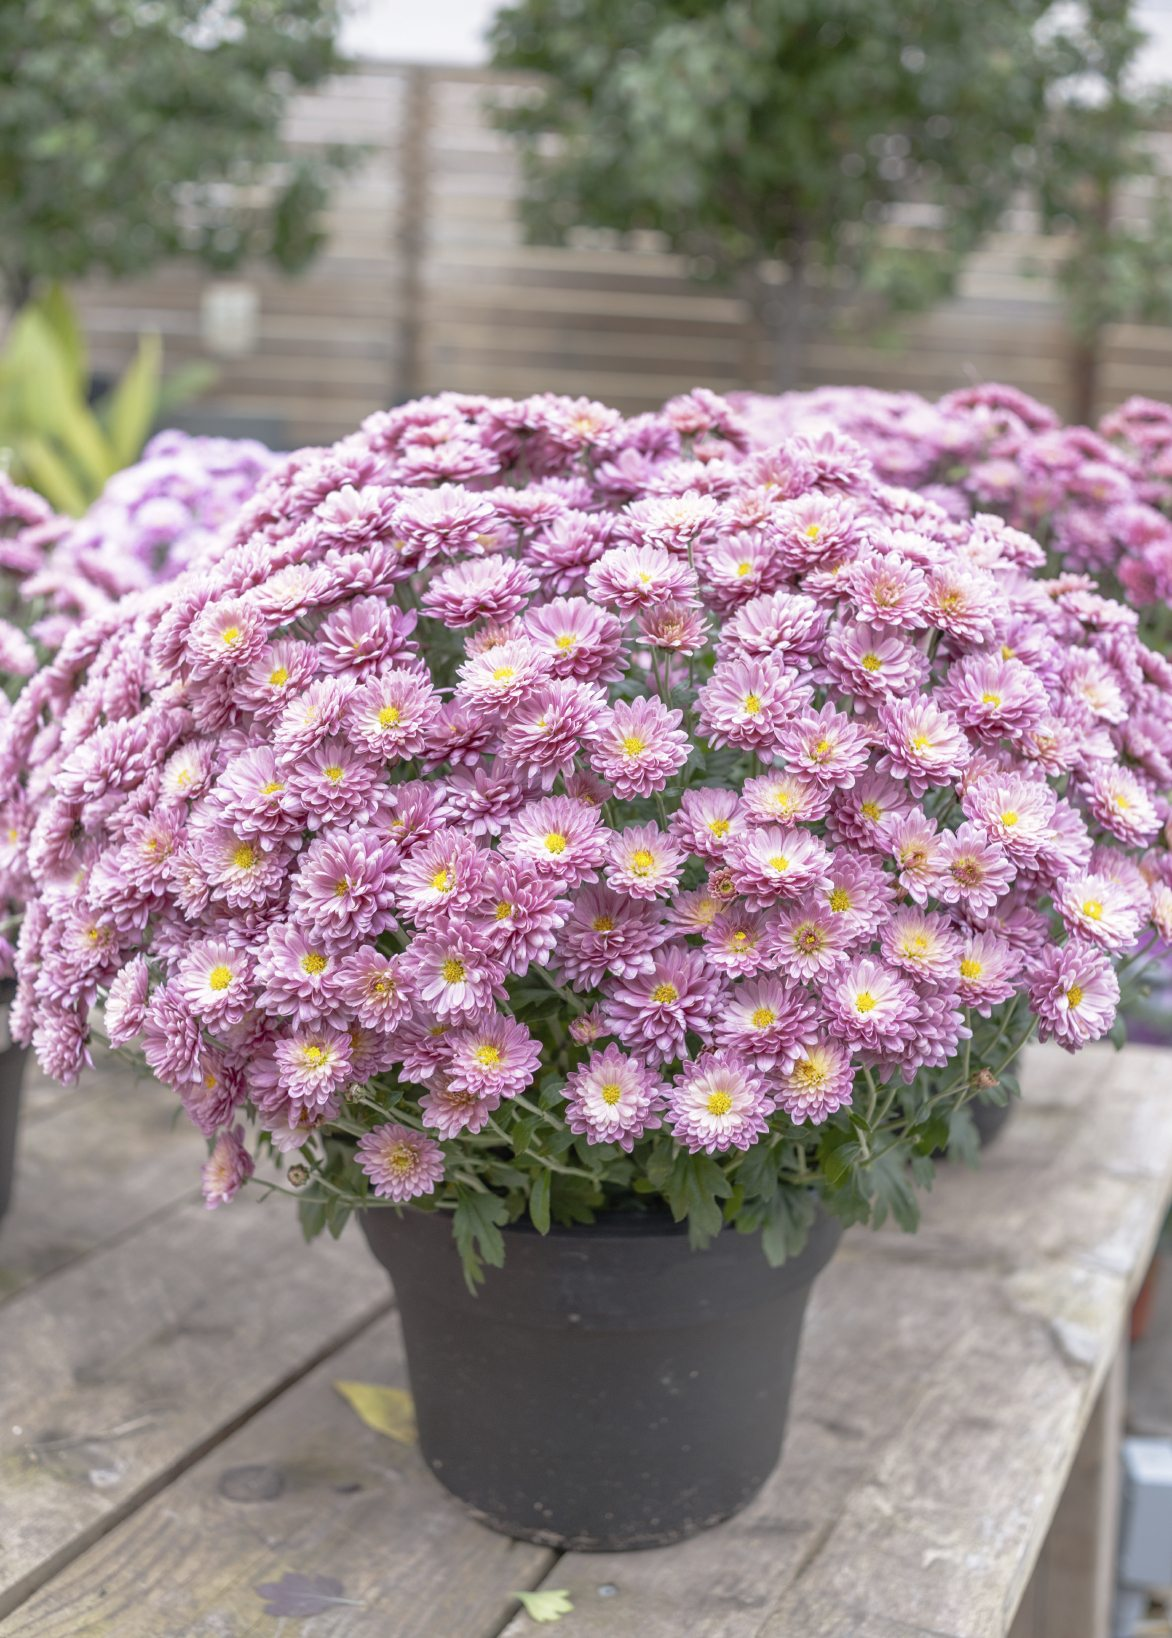 Care Of Container Grown Mums Tips For Growing Chrysanthemums In Pots